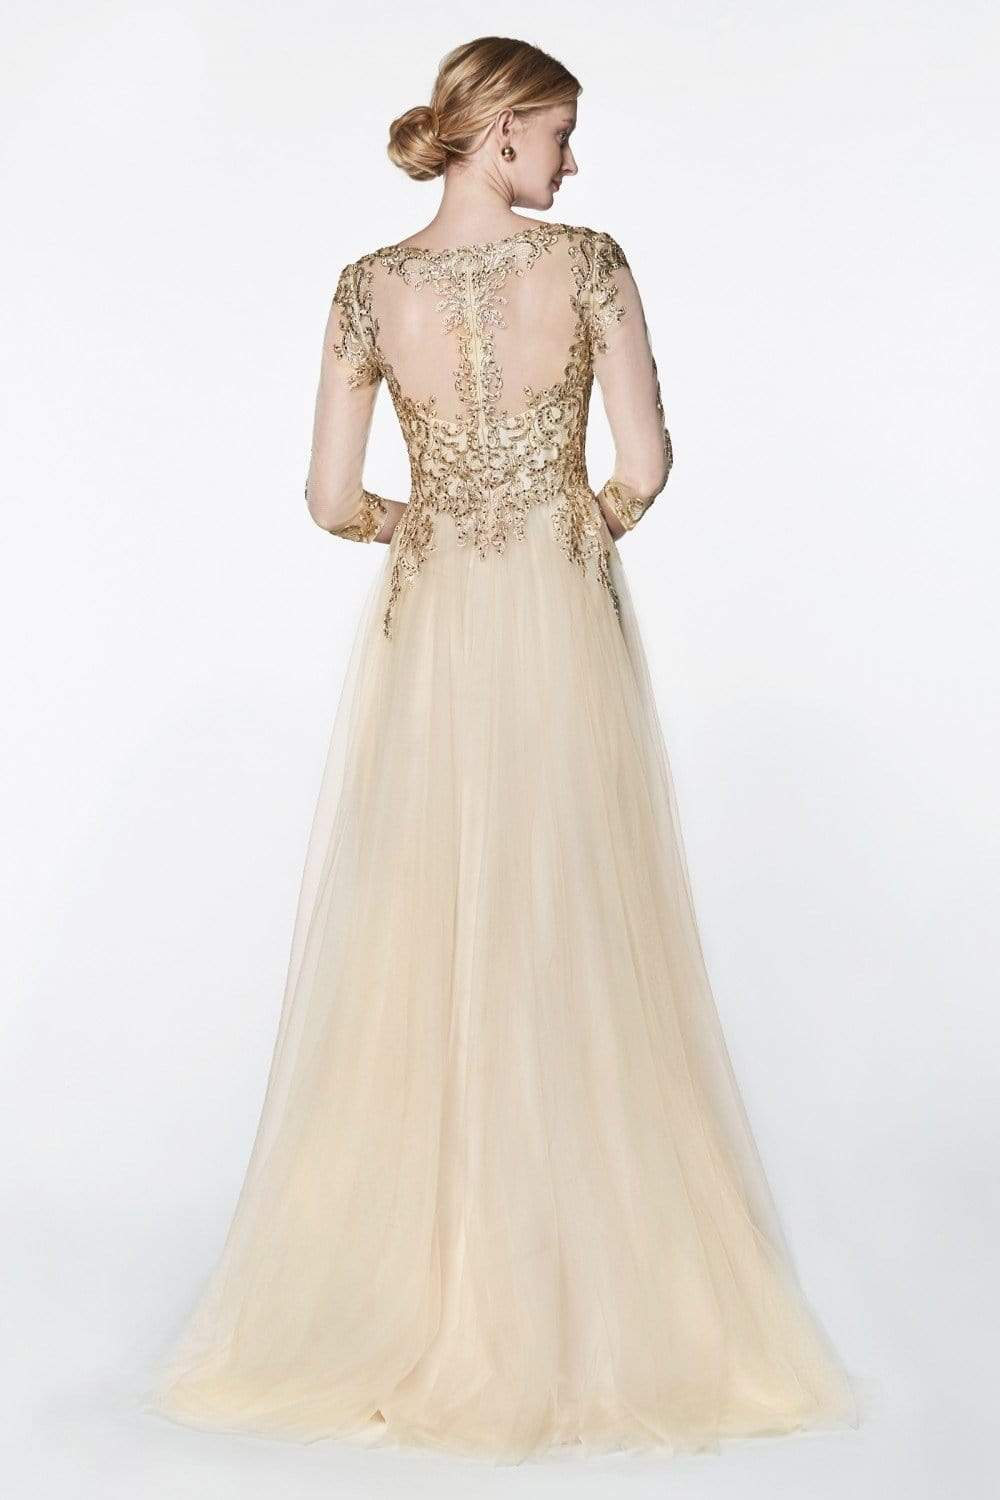 Cinderella Divine - OC003 Beaded Lace V-Neck Evening Dress Special Occasion Dress